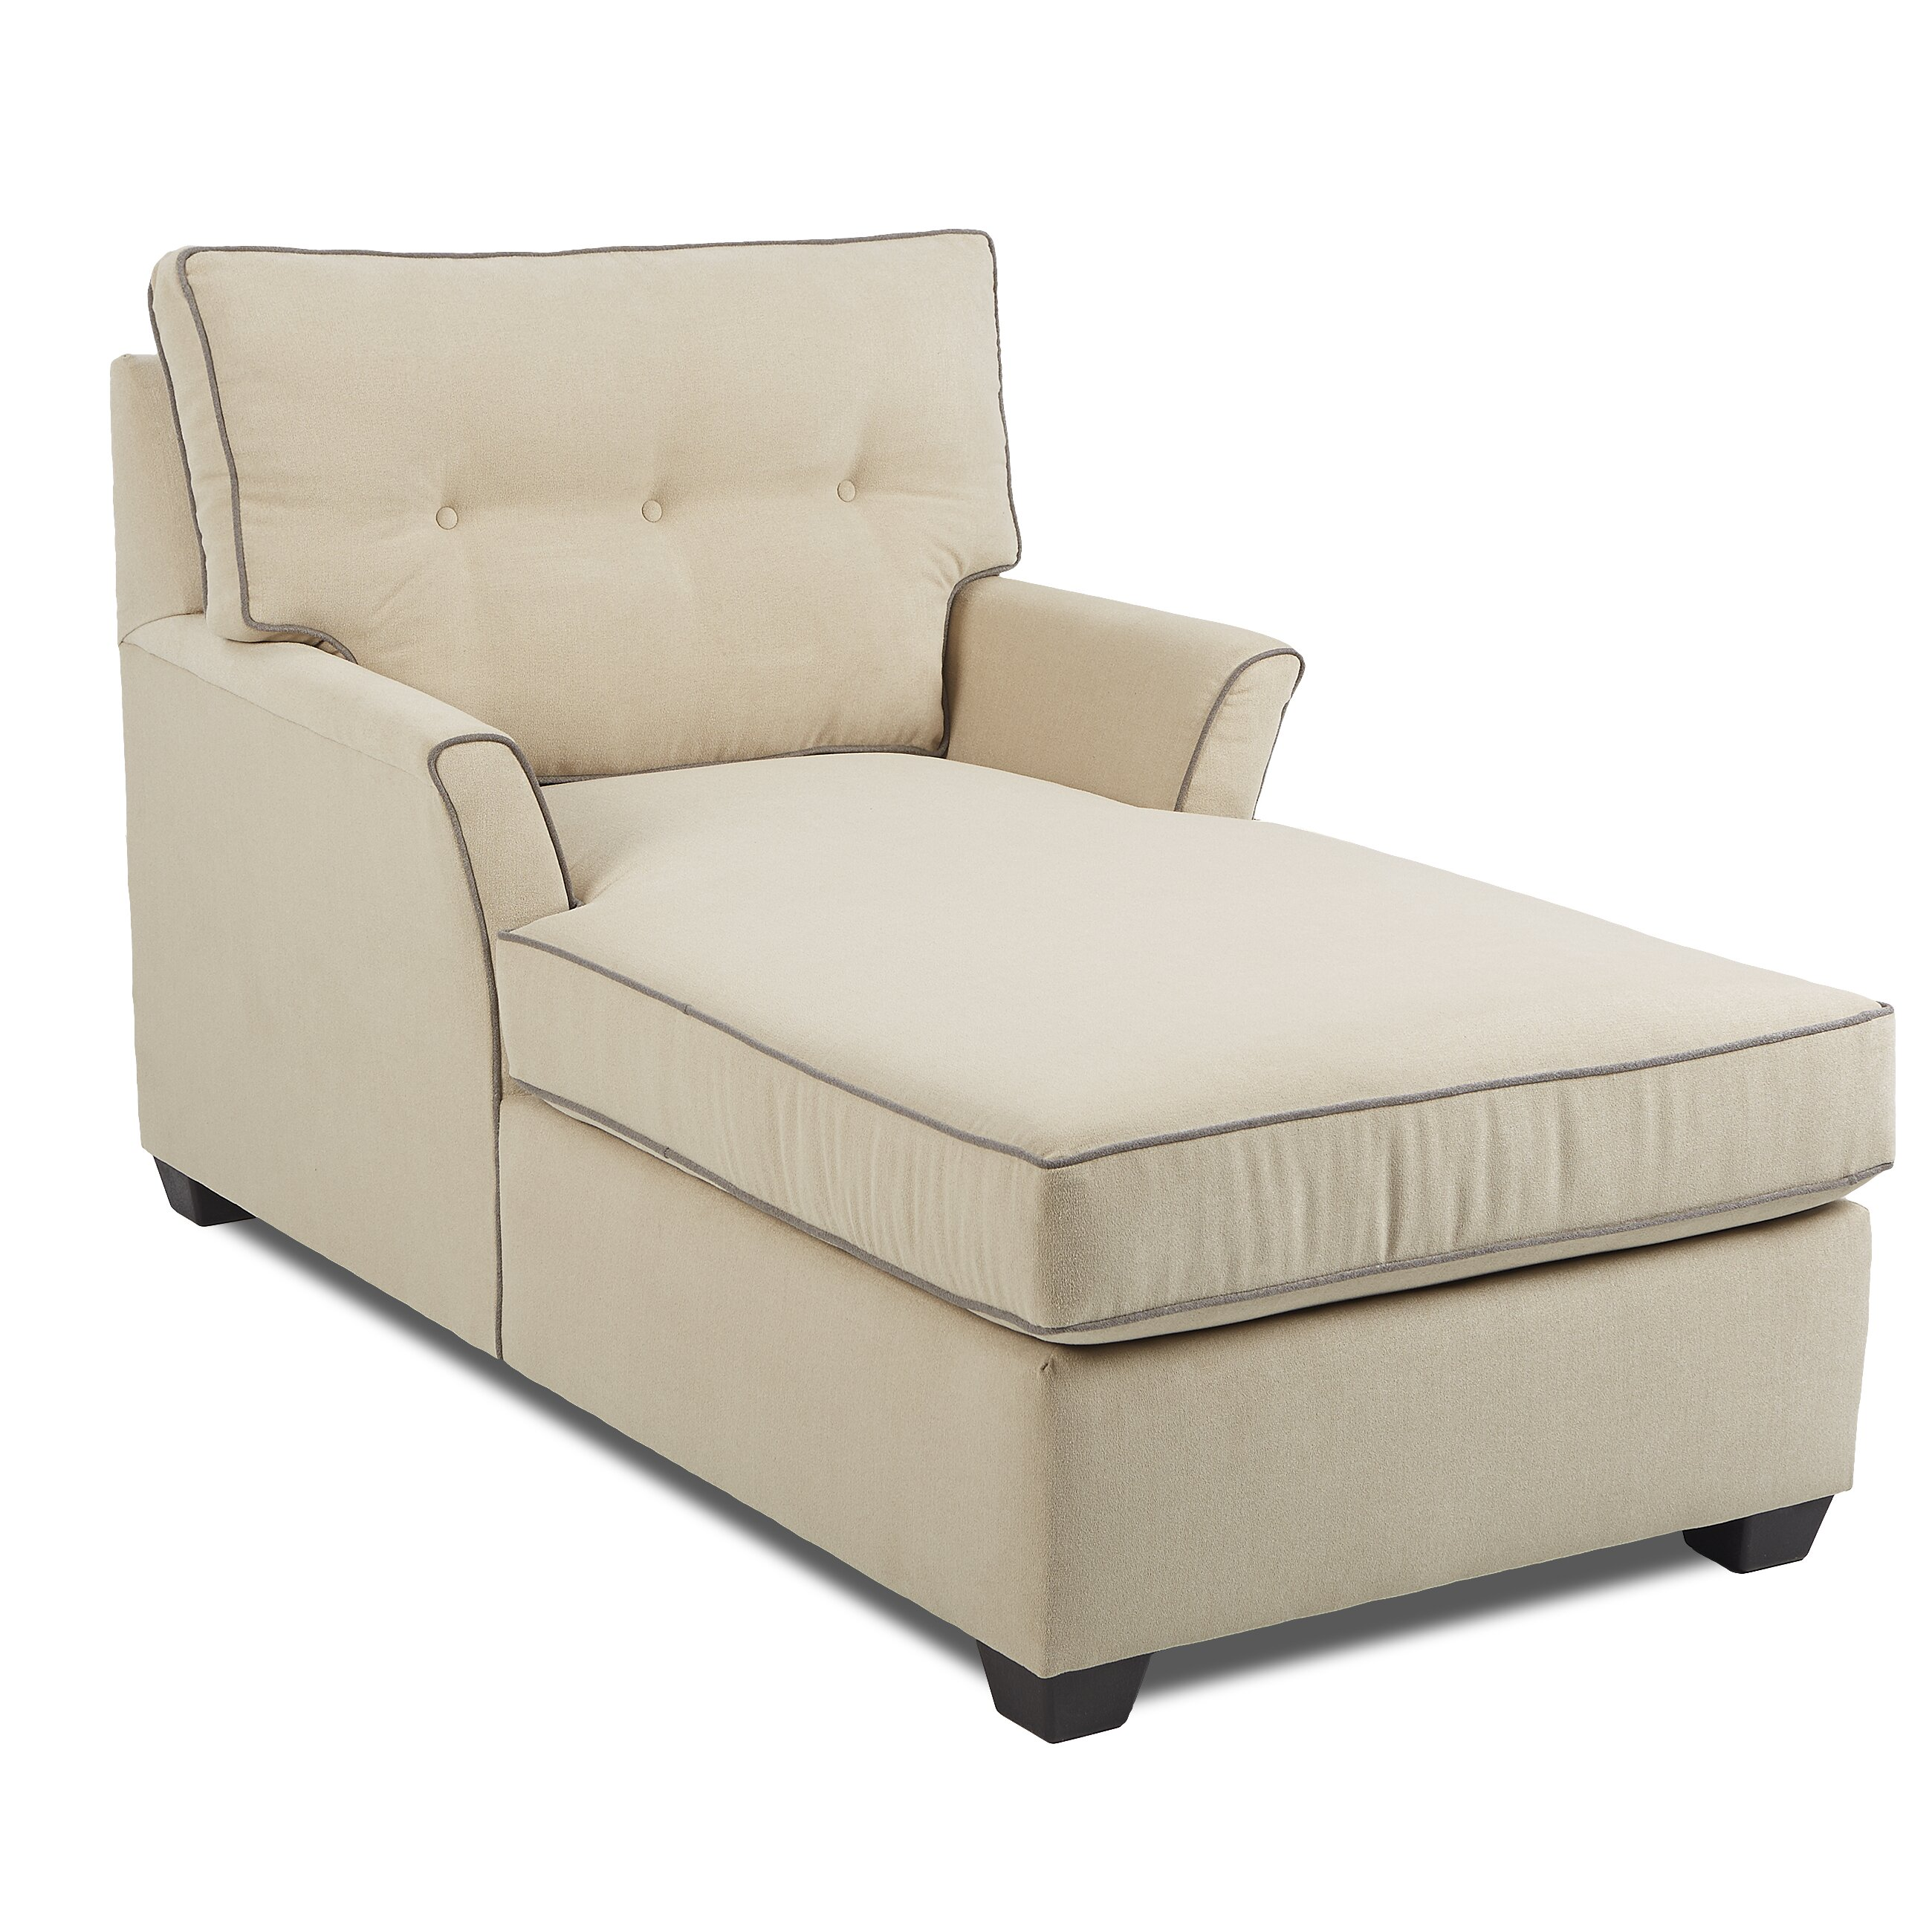 Klaussner furniture lovell chaise lounge reviews wayfair for Chaise and lounge